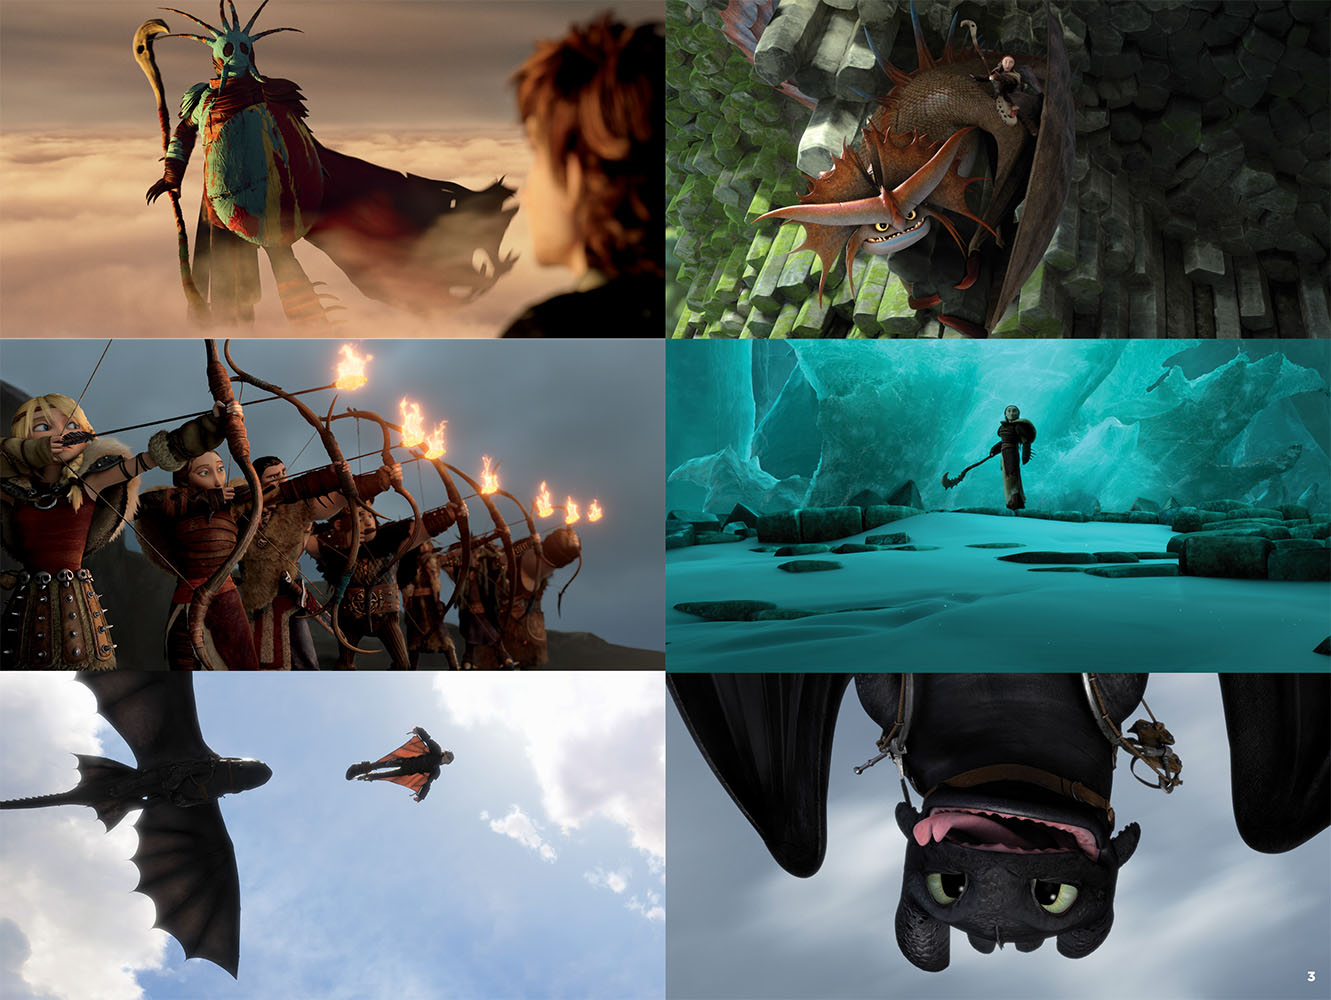 Encartes pop encarte how to train your dragon 2 music from the tags booklet soundtrack ccuart Gallery